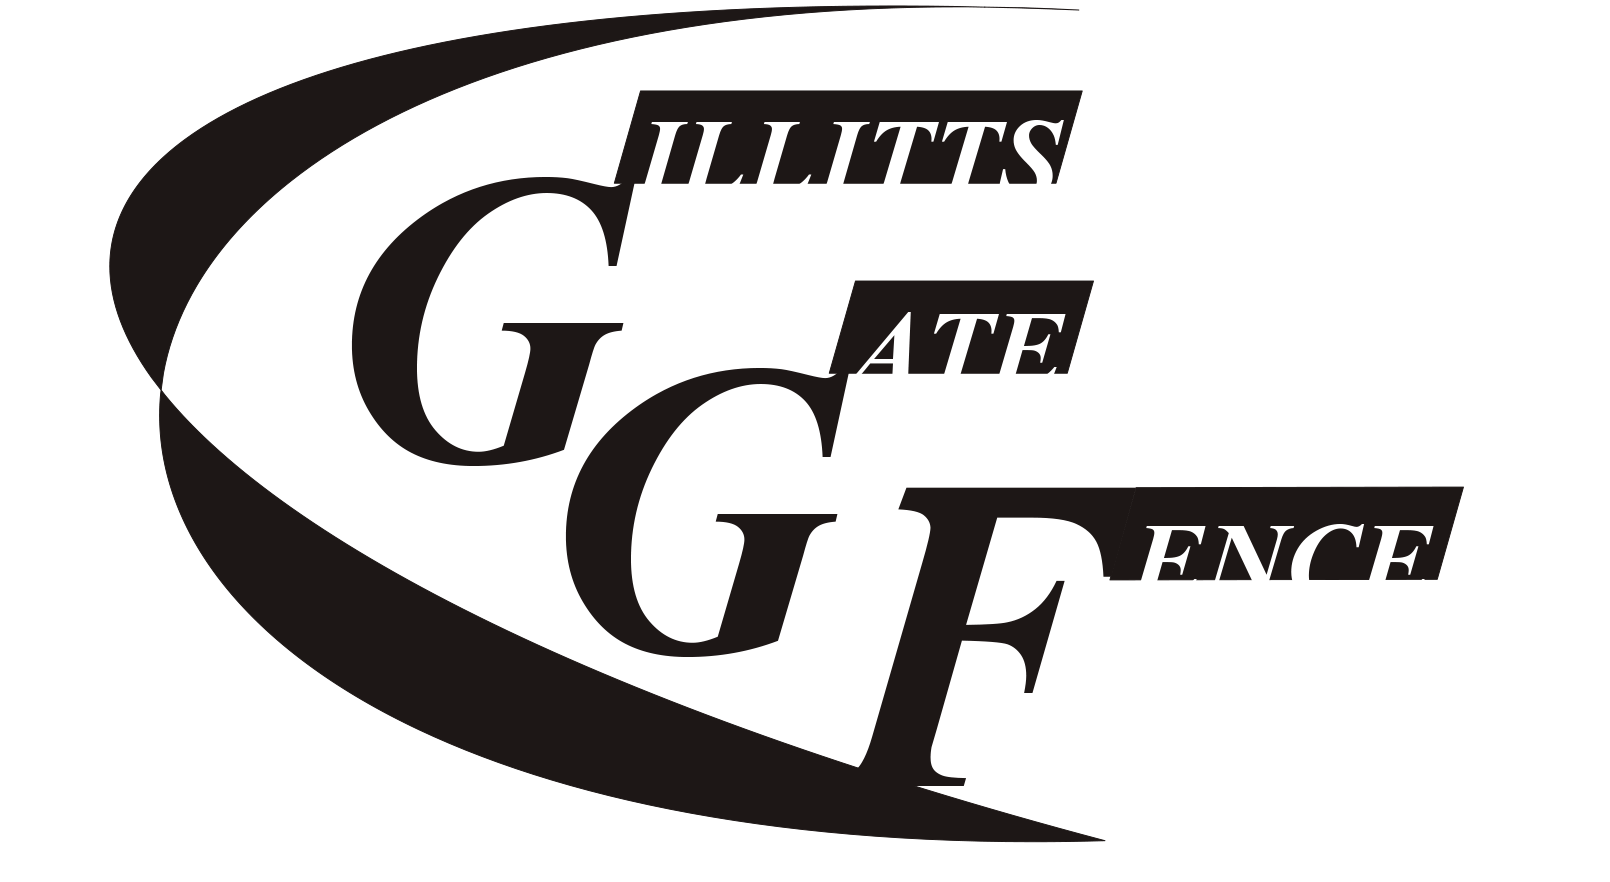 Gillitts Gate & Fence